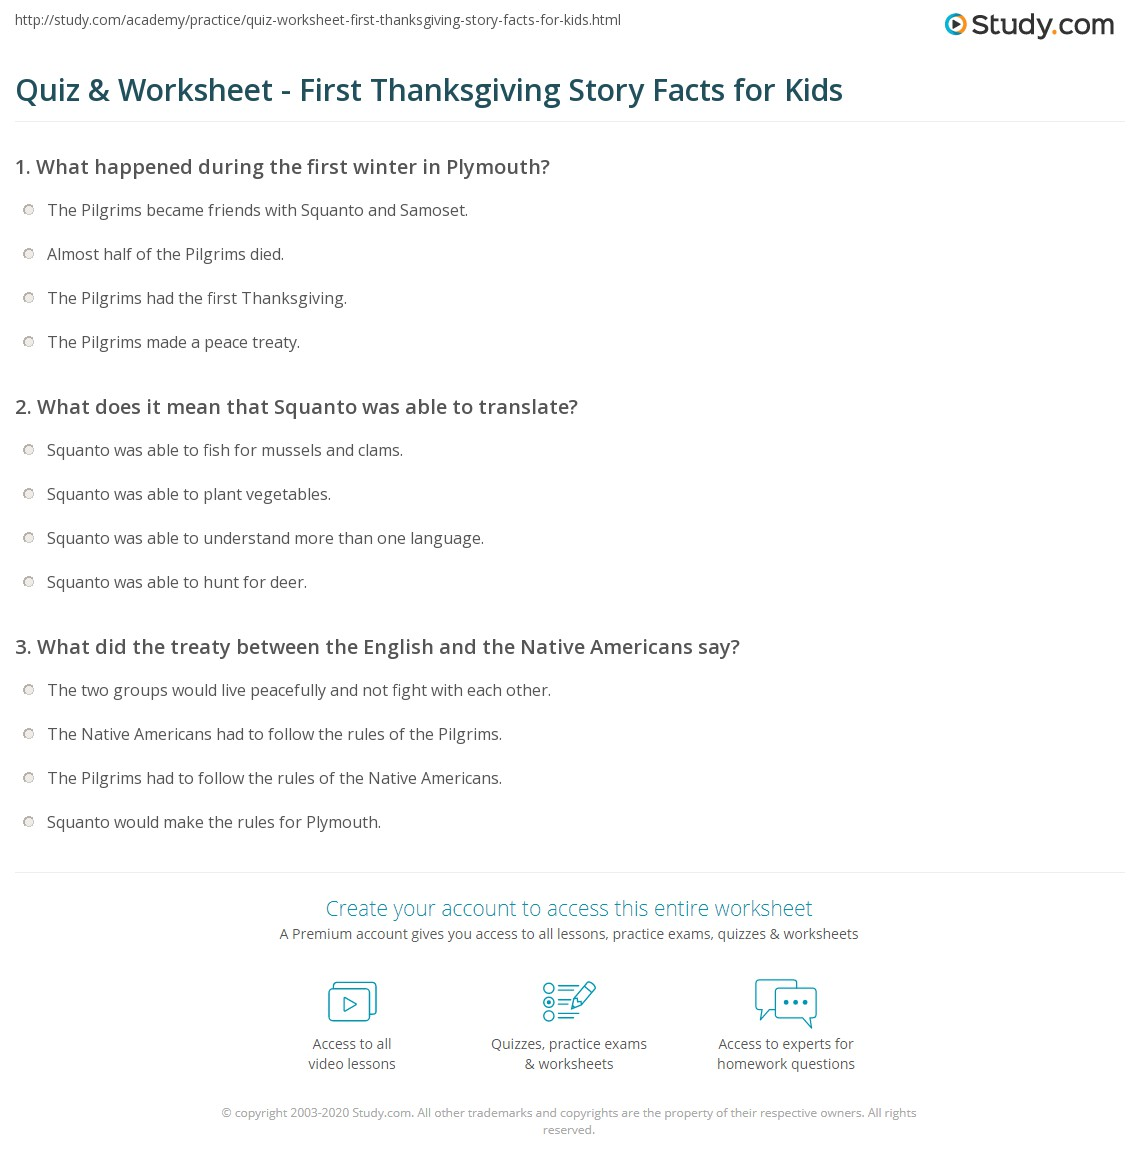 picture regarding Thanksgiving Quiz Printable known as Quiz Worksheet - 1st Thanksgiving Tale Information and facts for Children